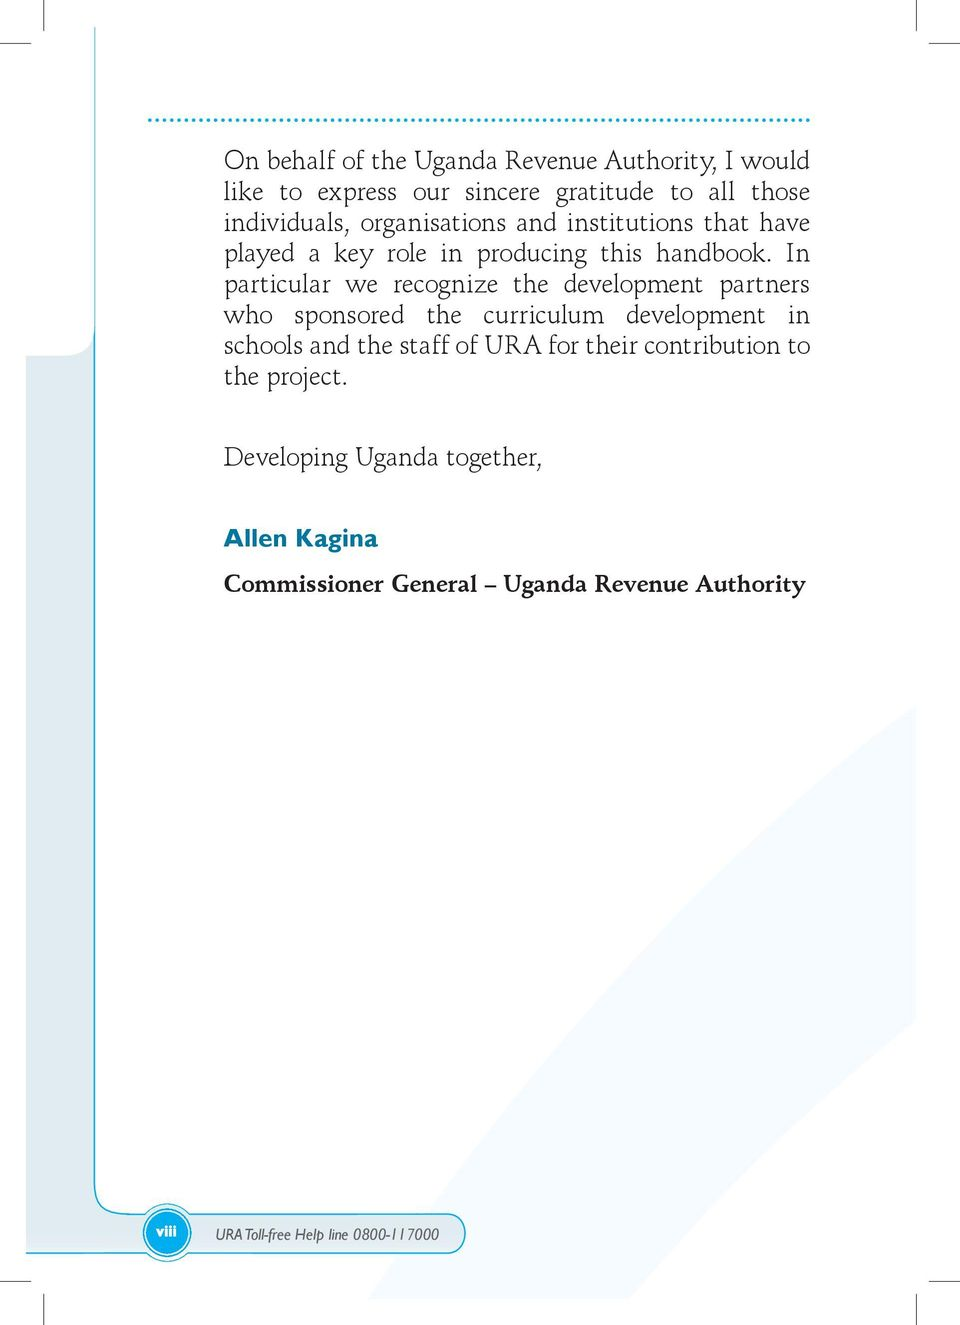 In particular we recognize the development partners who sponsored the curriculum development in schools and the staff of